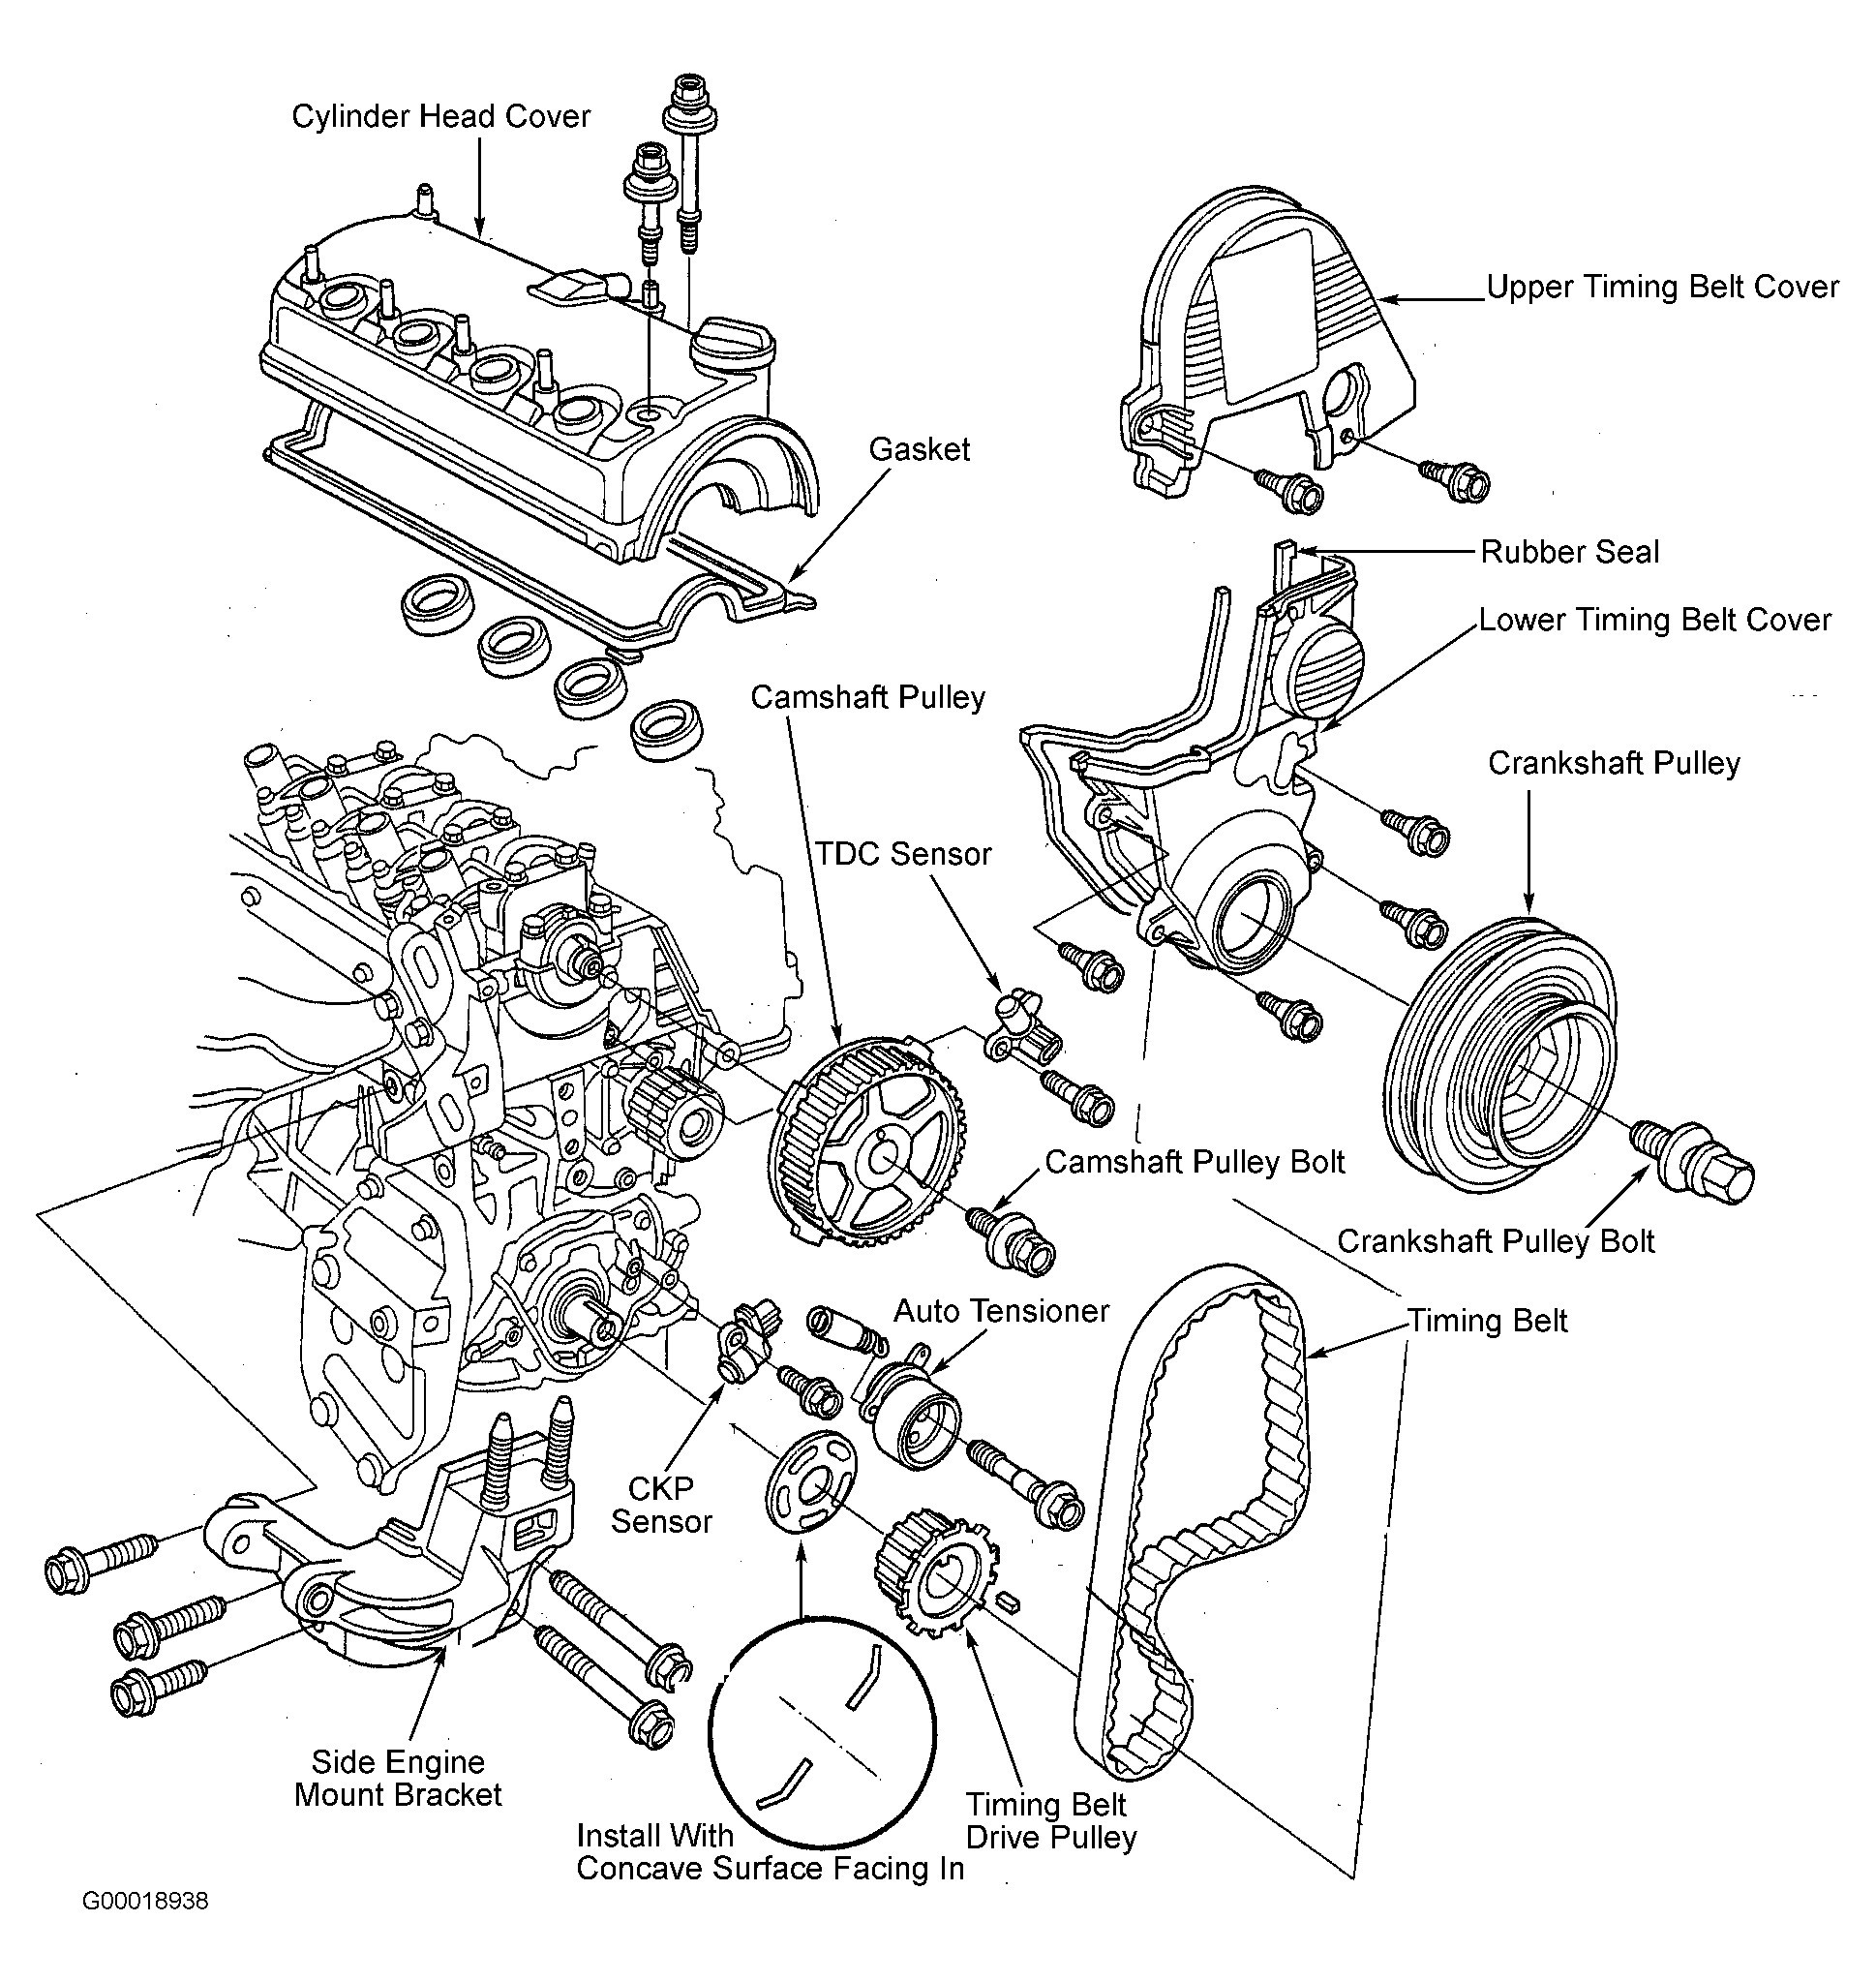 hight resolution of 2003 chevy trailblazer parts nemetas aufgegabelt info 2003 trailblazer lt 2003 chevy trailblazer parts diagram